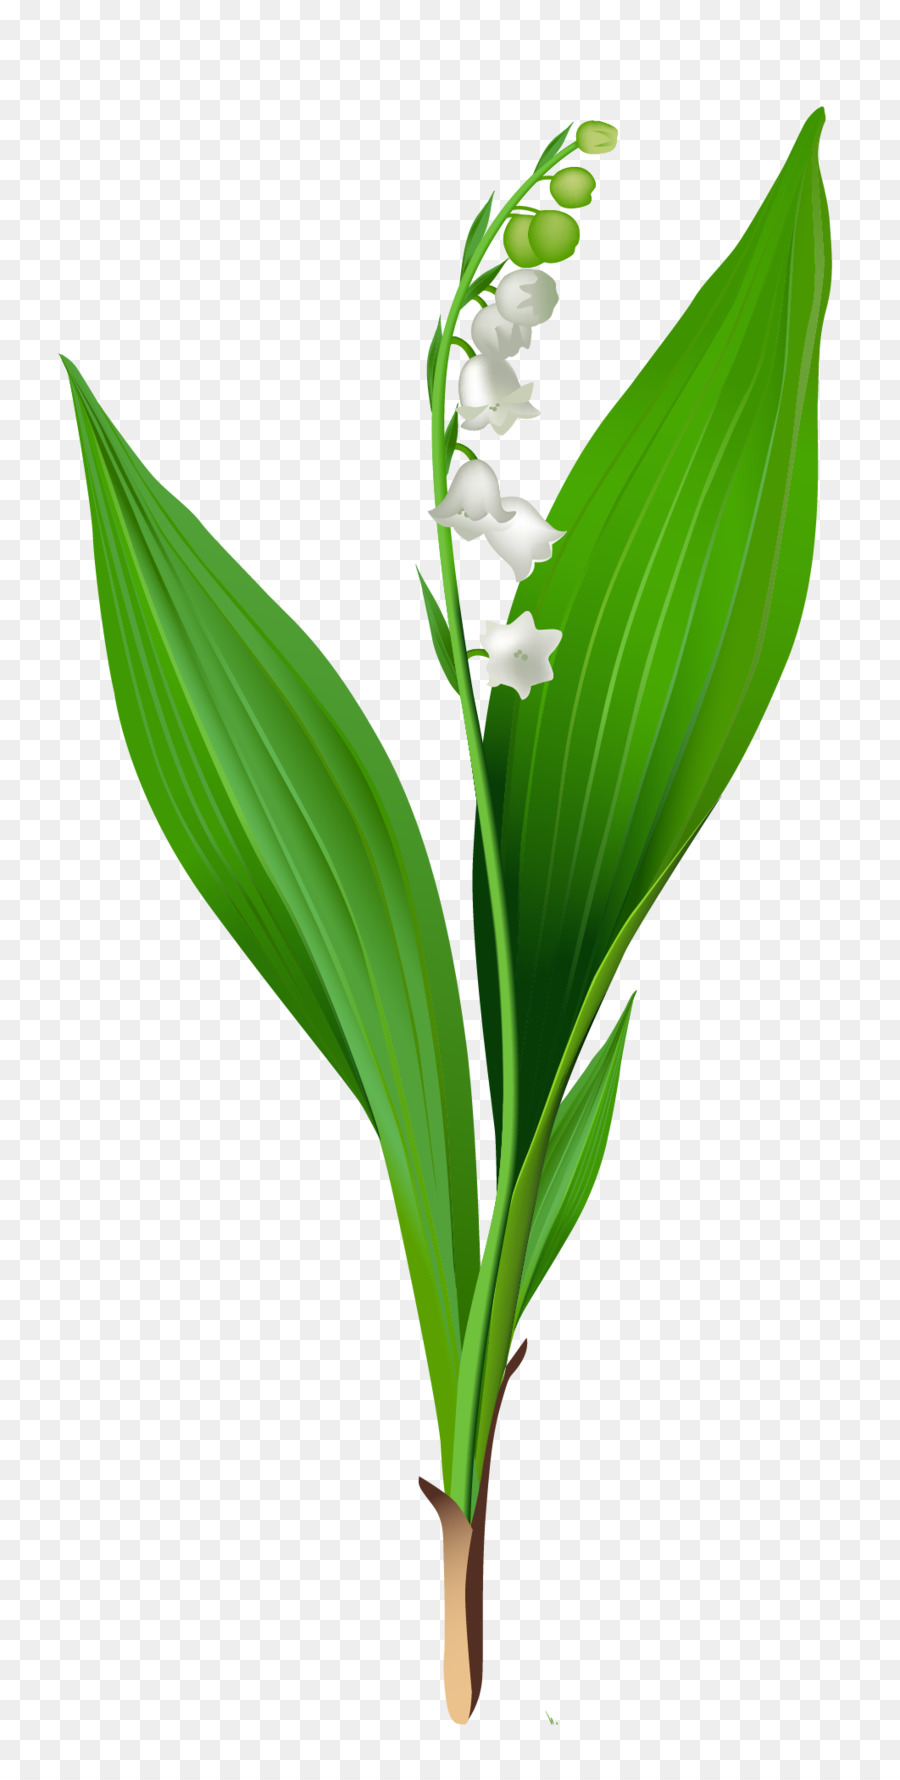 lily of the valley clipart Lily of the valley Clip art